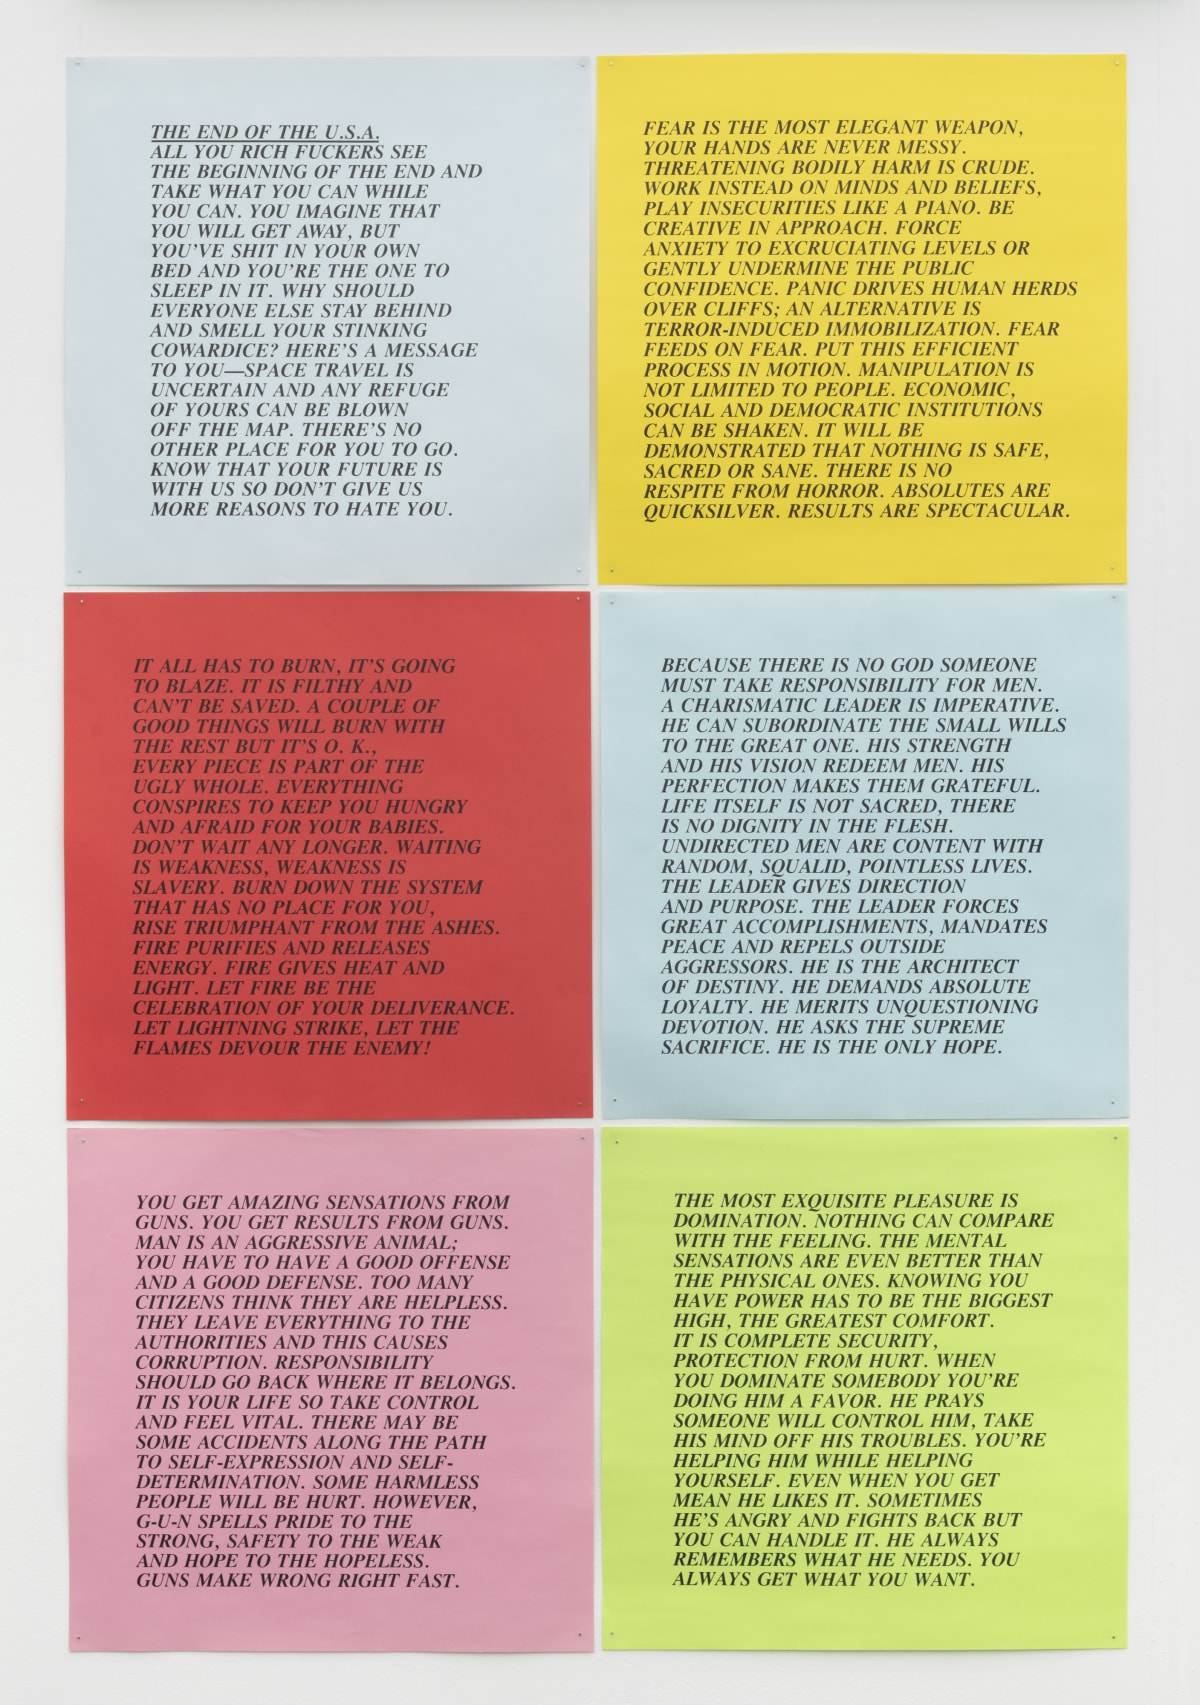 Jenny Holzer 10 Inflammatory Essays 1979 - 1982, 1993/2018 Inkjet on paper, unlimited edition. This series produced in an original set of 30 25 x 25 cm